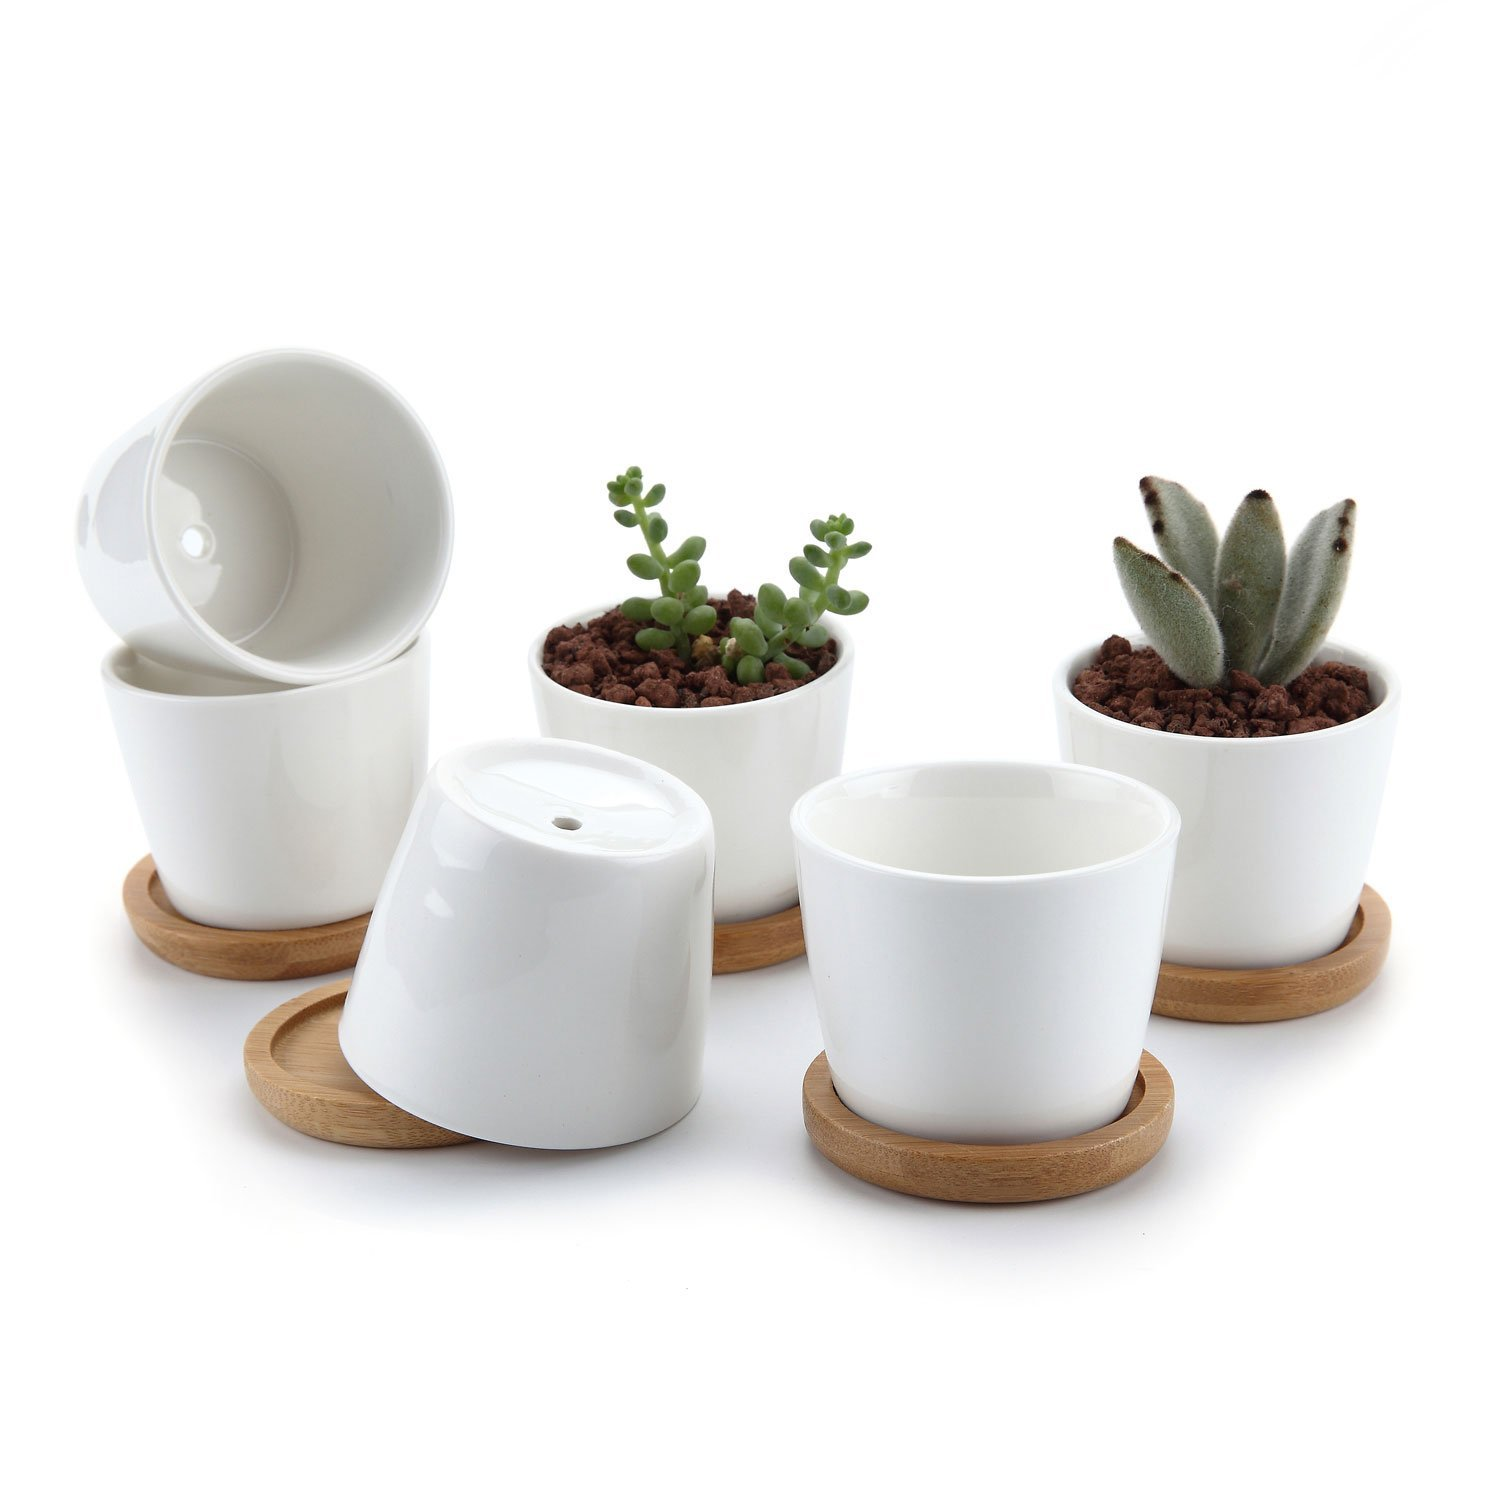 Ceramic Flower Planters White Flower Pots As Nice Indoor Outdoor Planter Decor